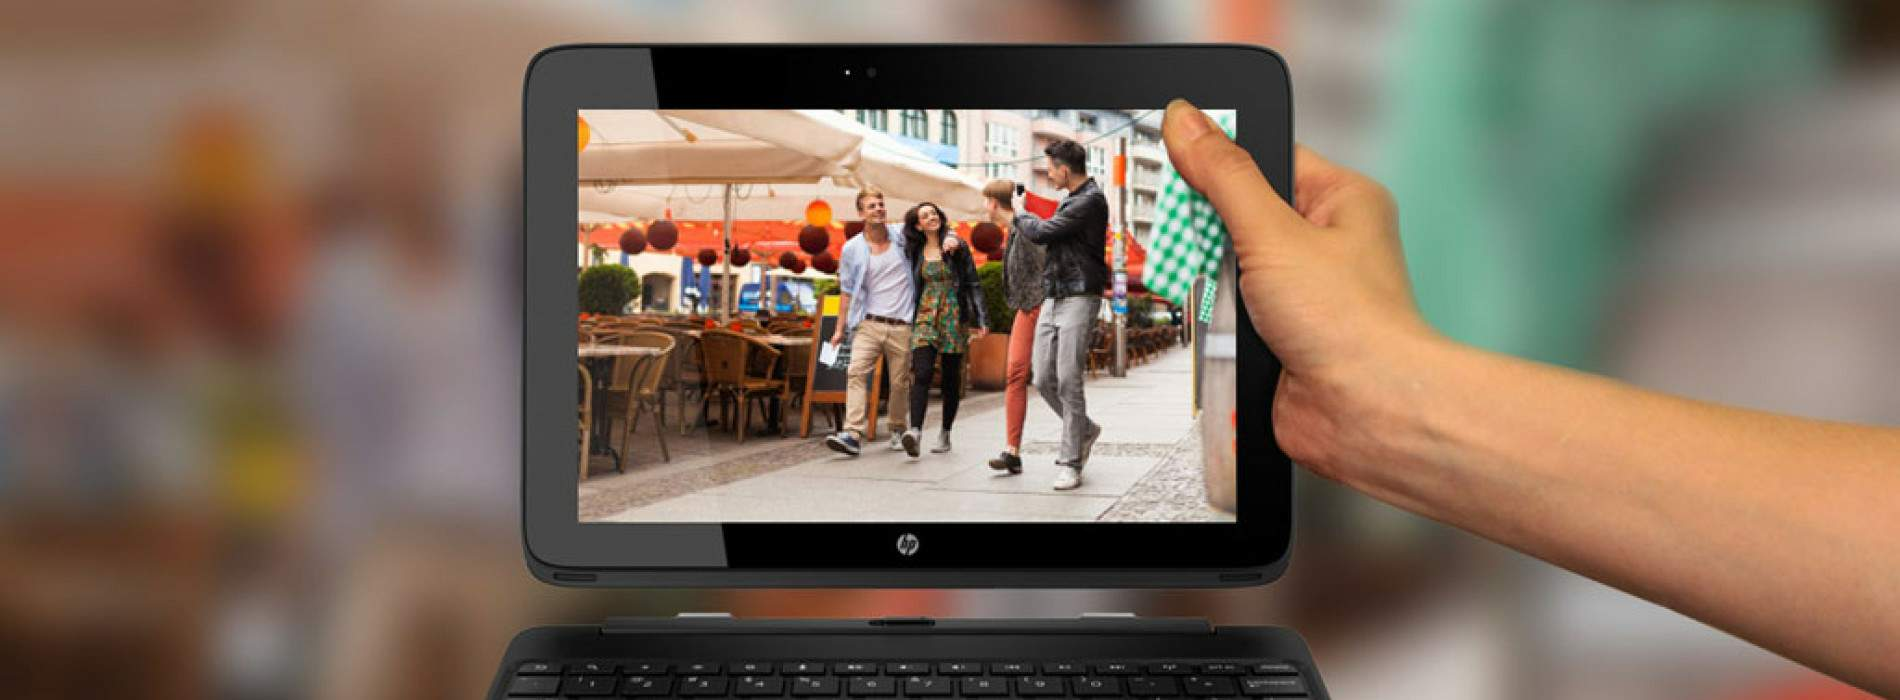 HP SlateBook x2: PC convertible con sistema operativo Android